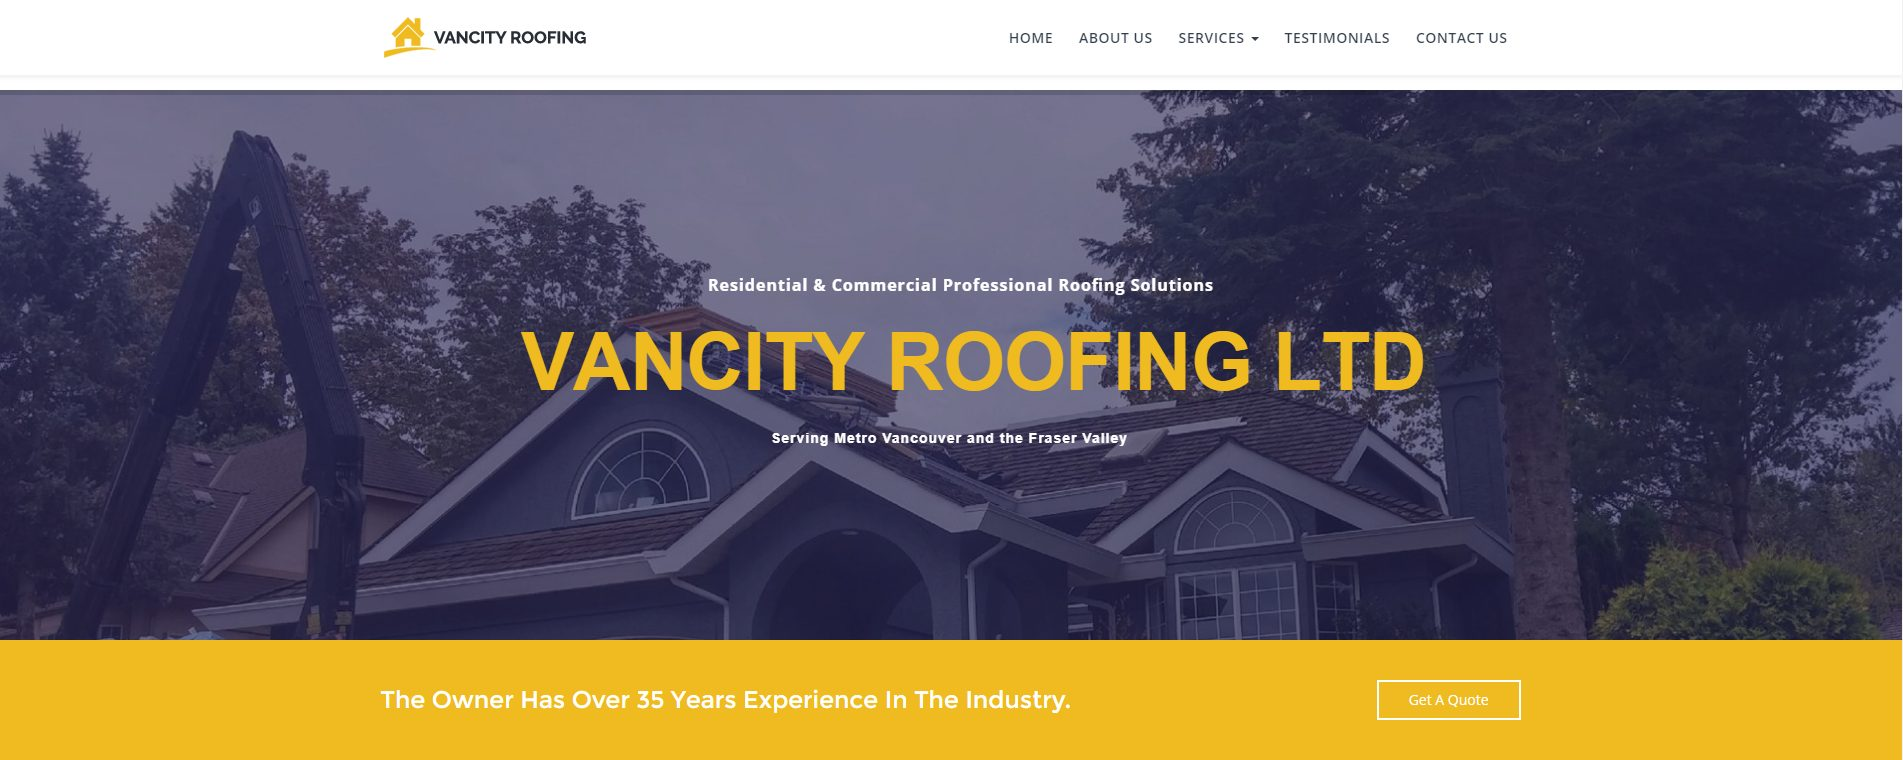 vancity roofing ltd